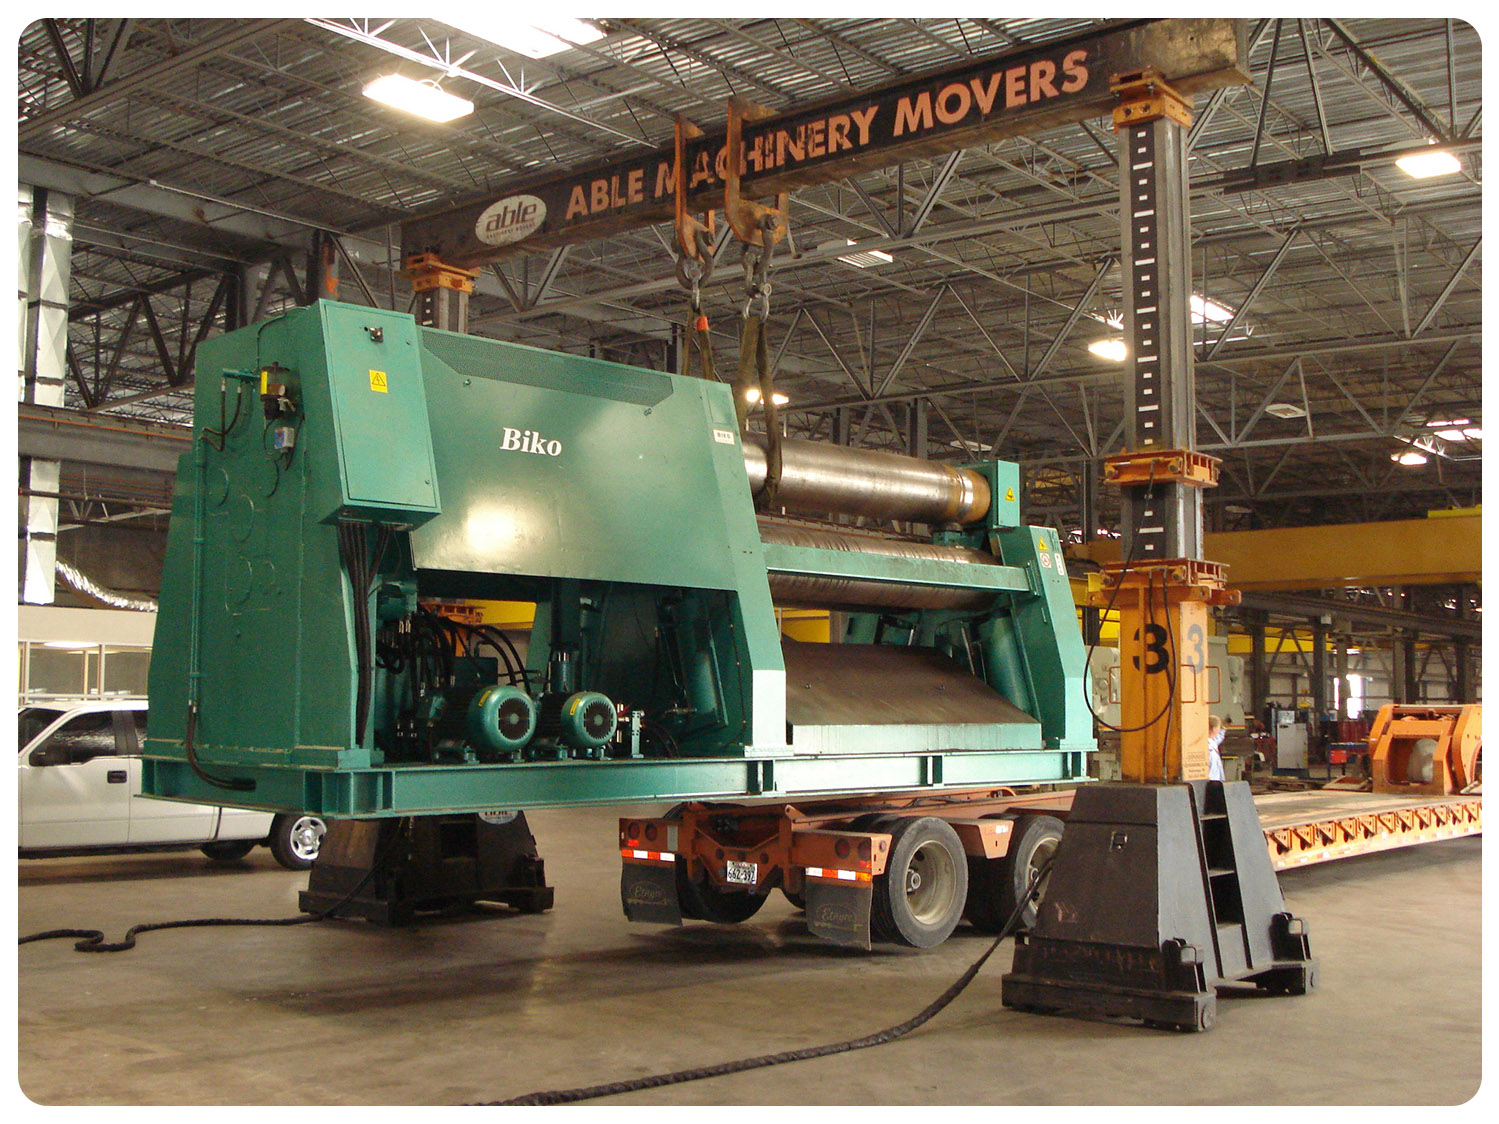 Heavy Machine Rigging - Able Machinery Movers